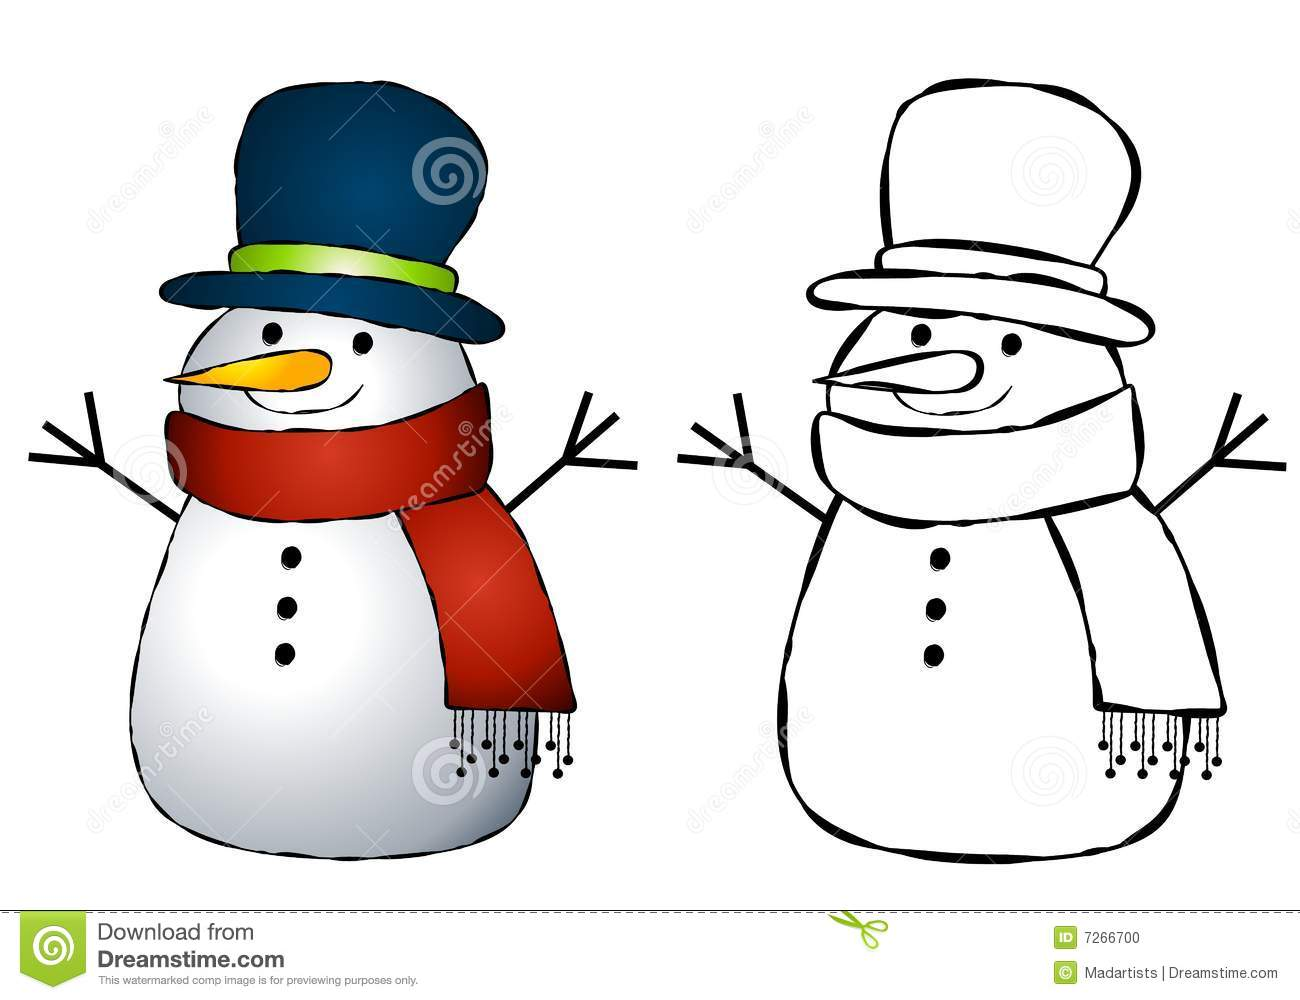 Snowman Clip Art Stock Photo - Image: 7266700